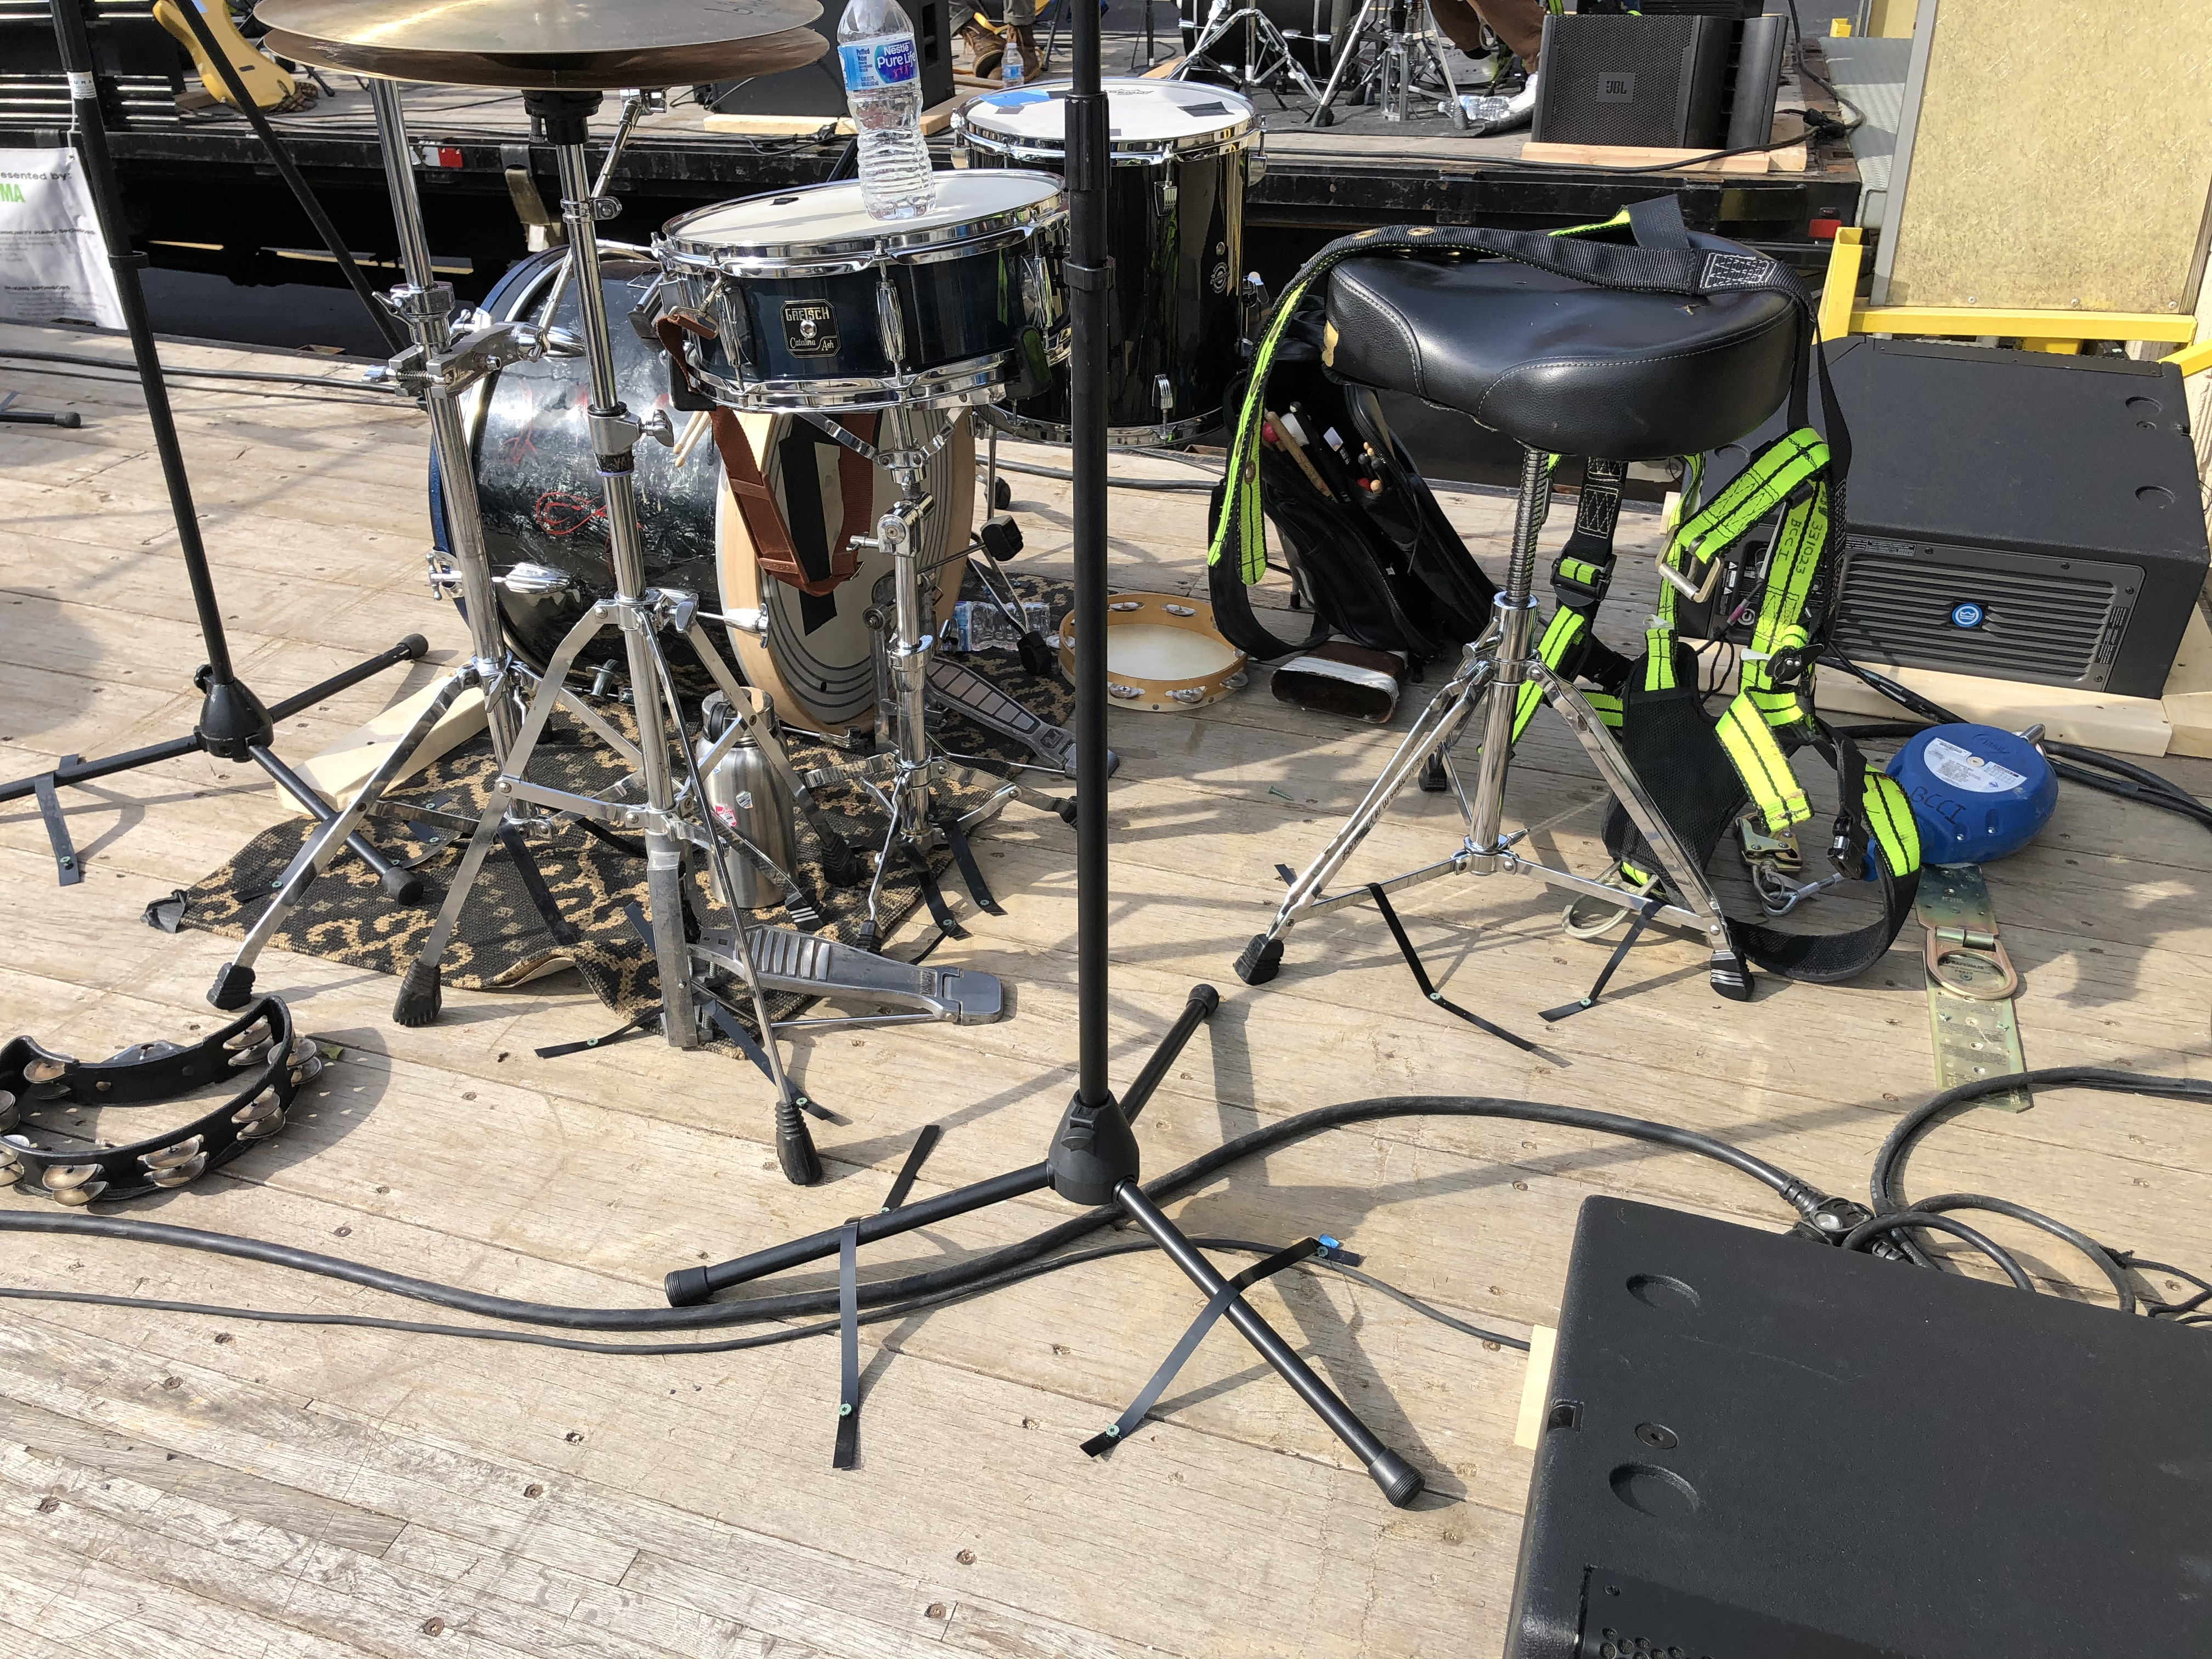 Music stands and gear strapped onto a flabed truck.